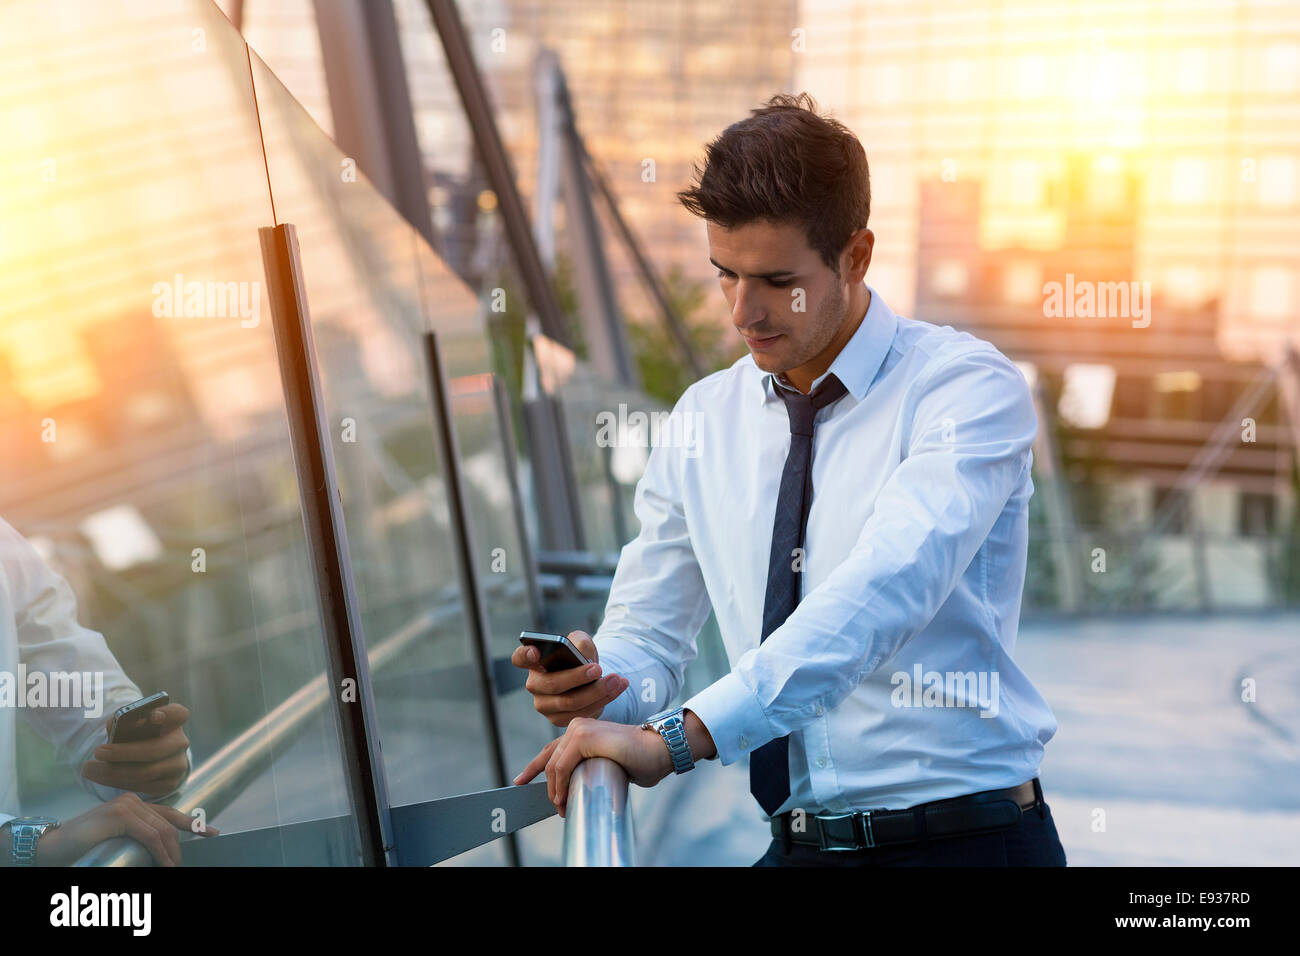 Portrait of Businessman using smart phone - Stock Image